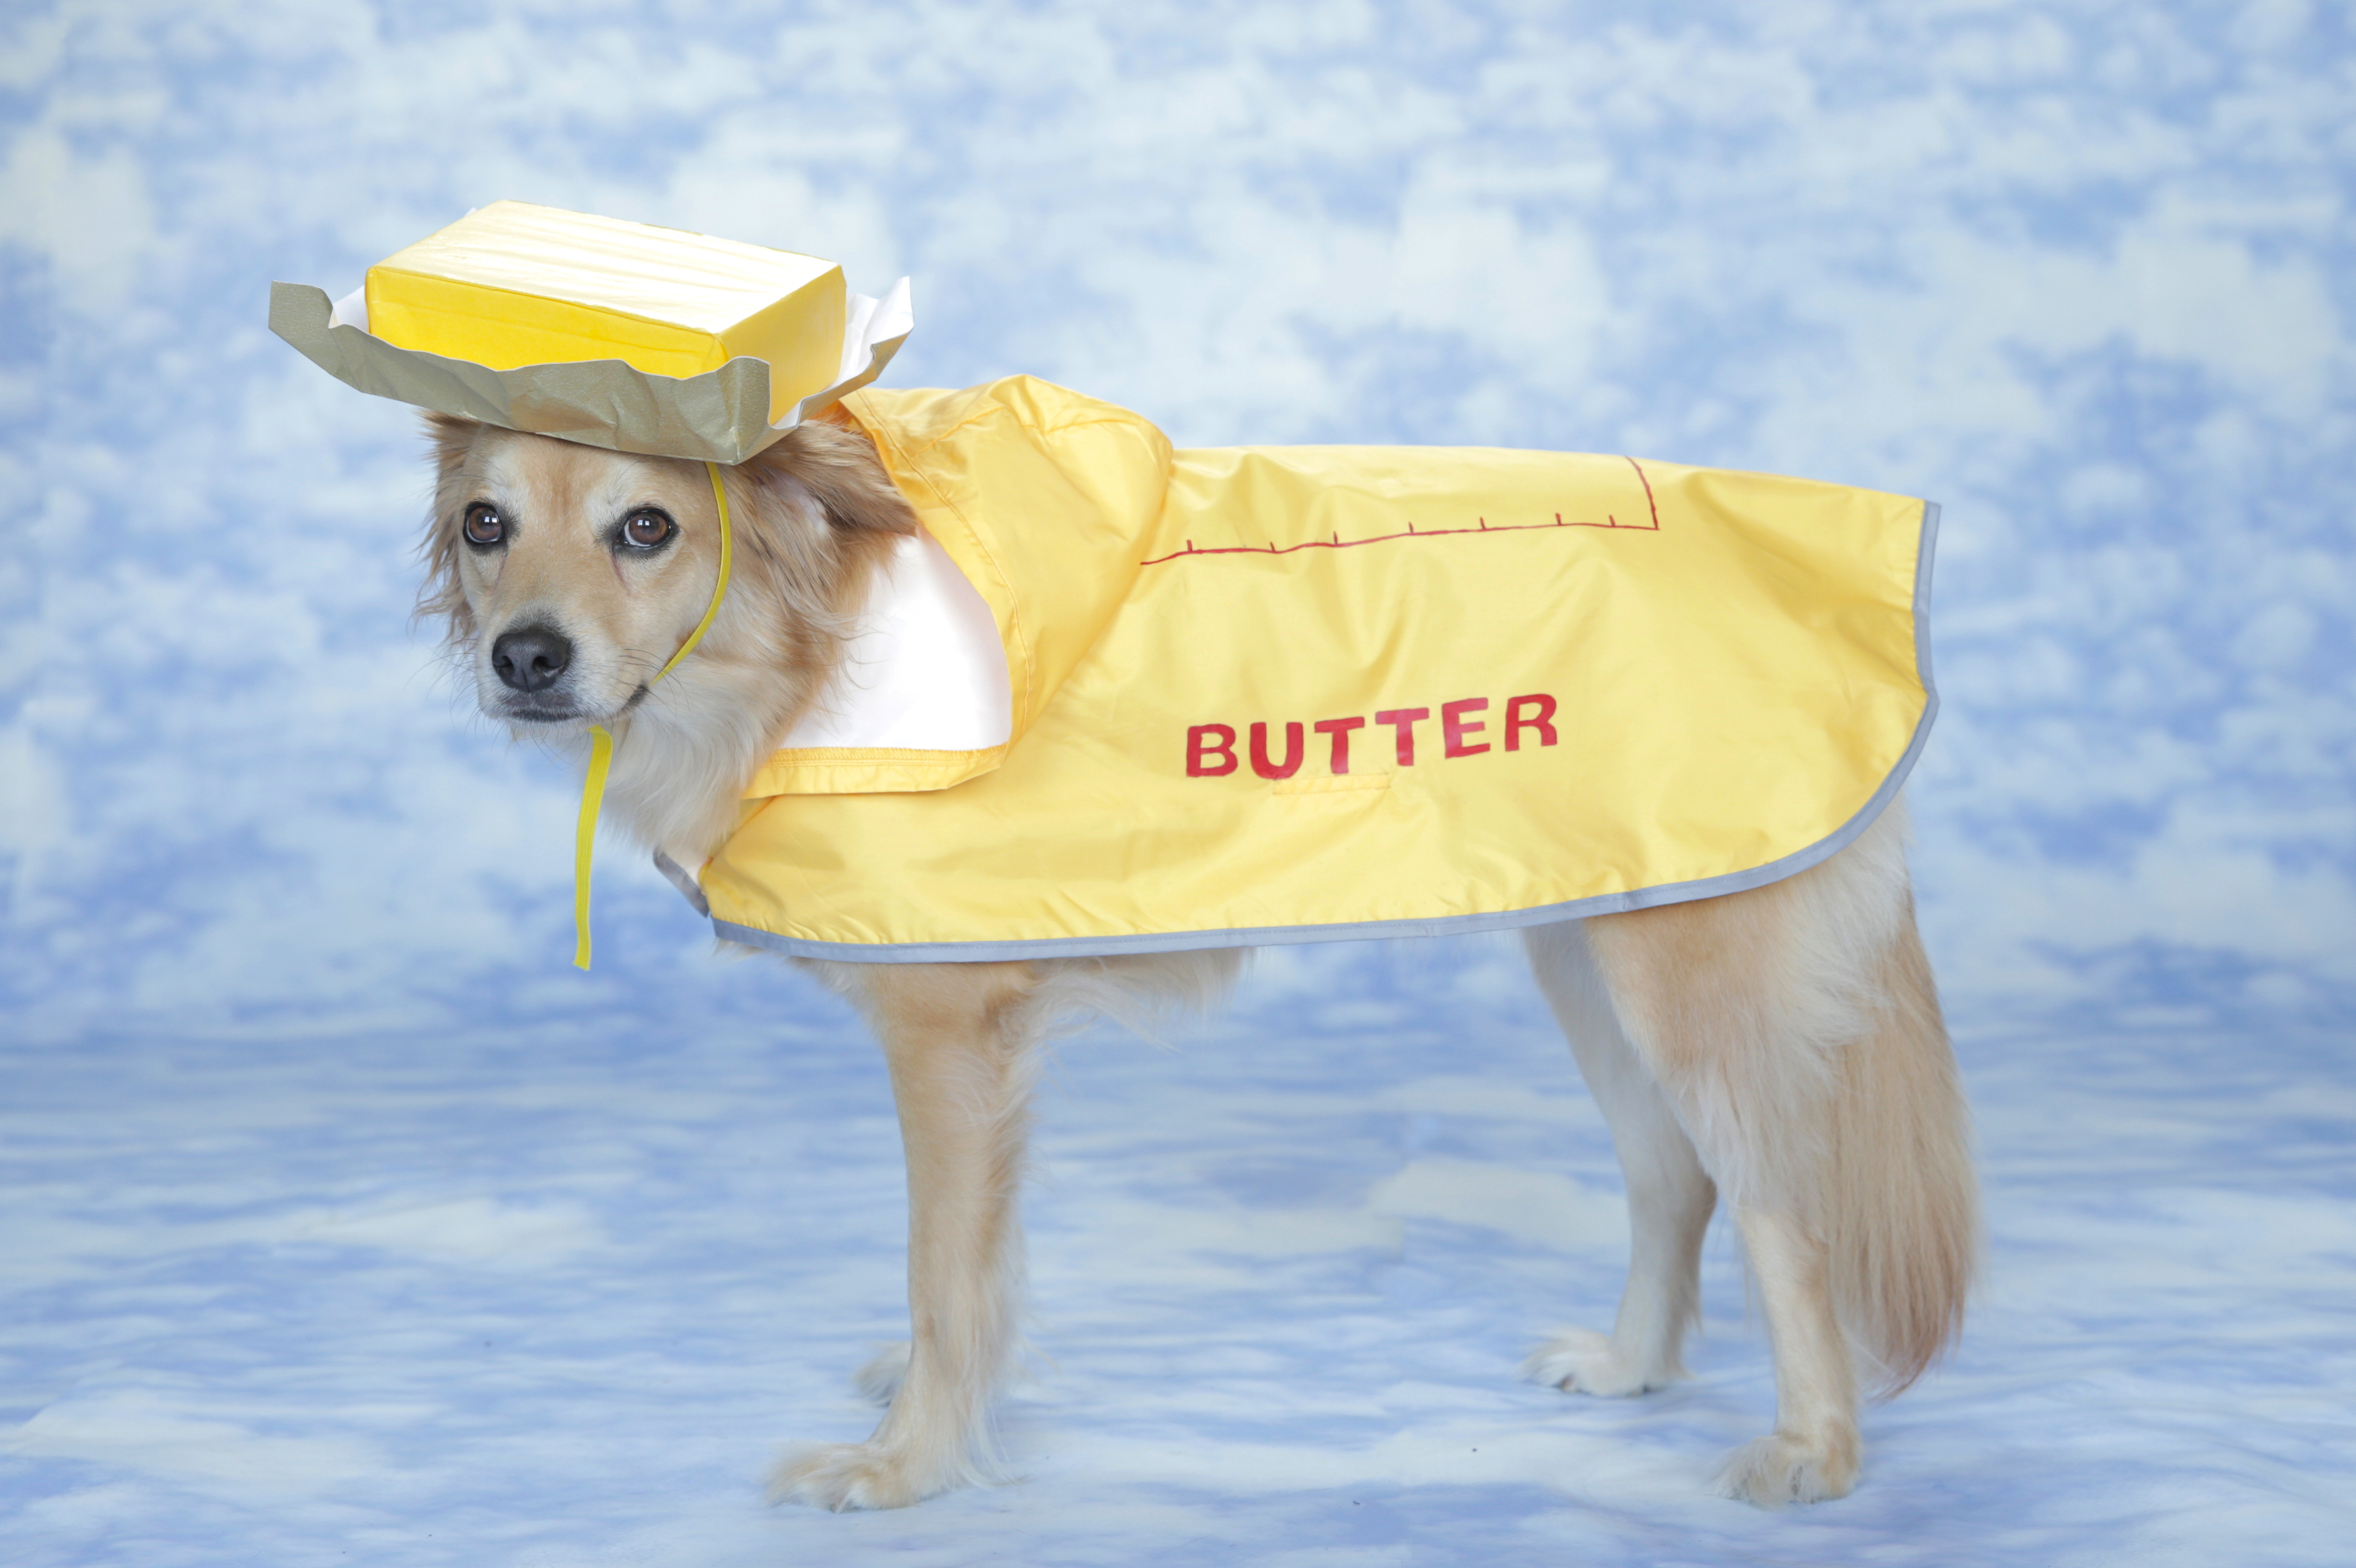 DIY easy butter costume for dogs